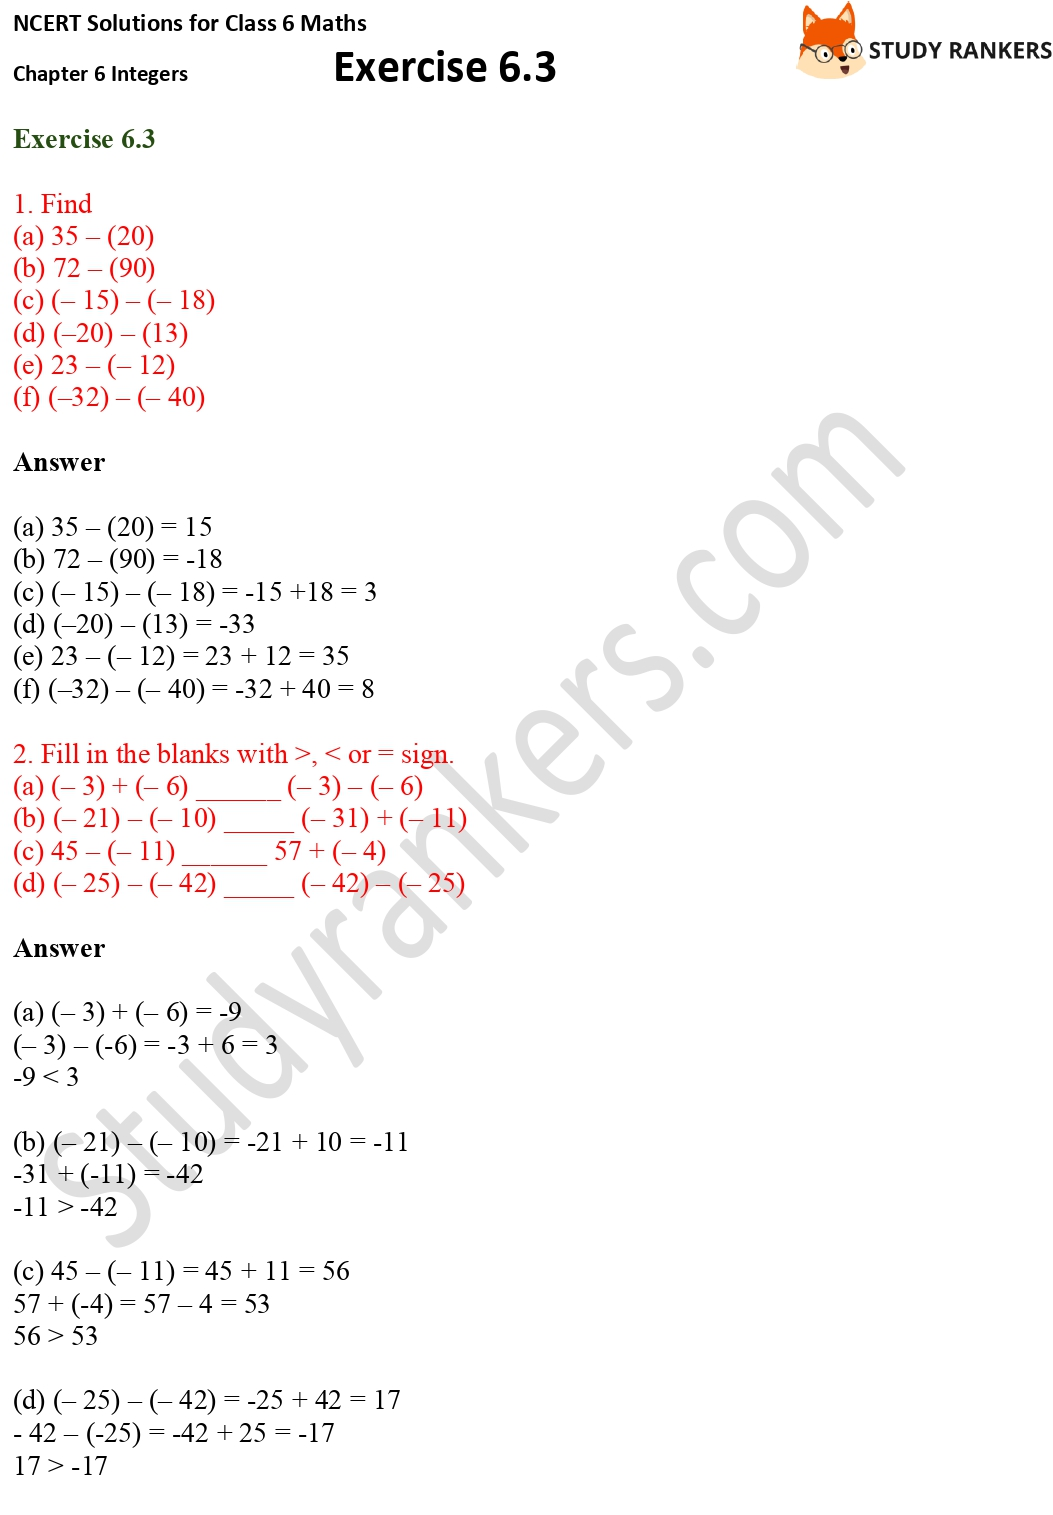 NCERT Solutions for Class 6 Maths Chapter 6 Integers Exercise 6.3 Part 1